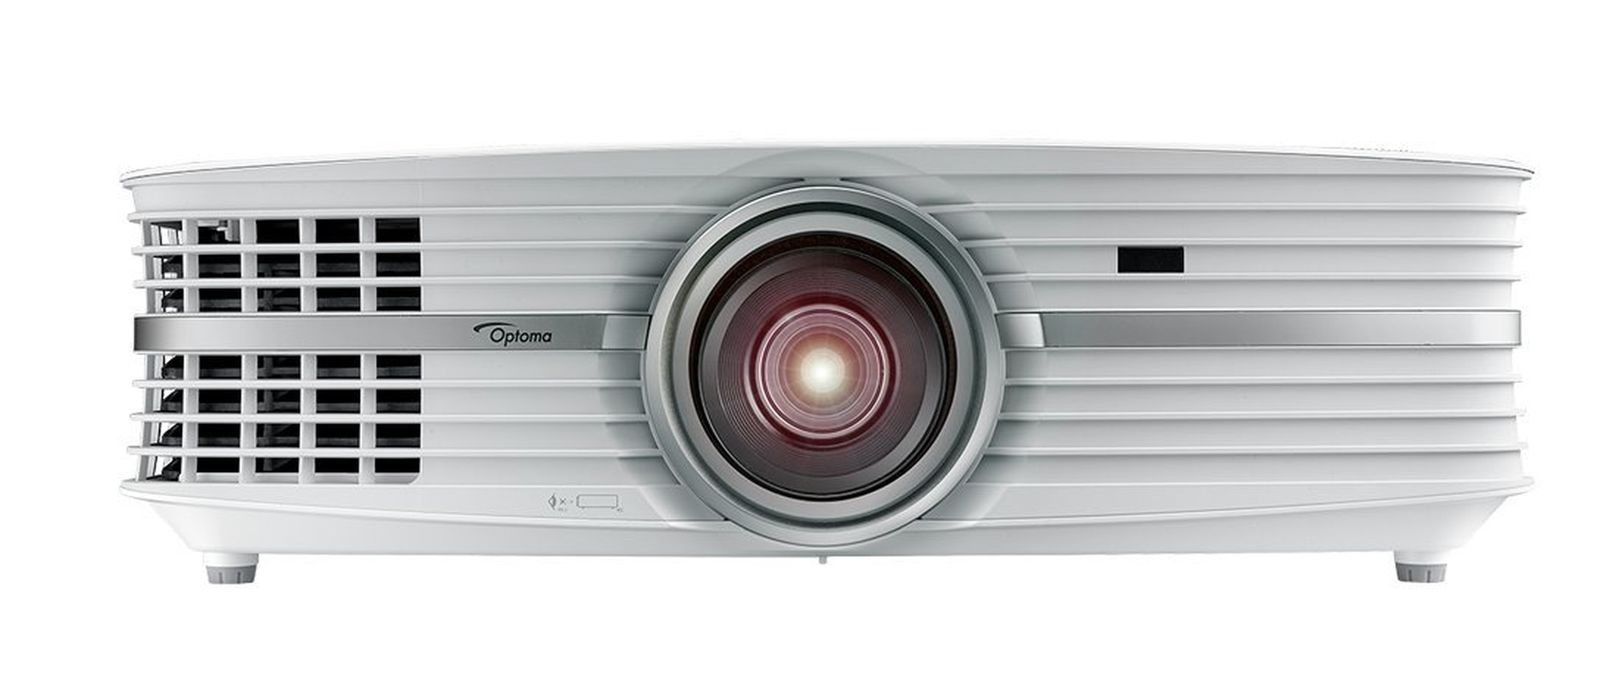 Optoma UHD60 4K Ultra High Definition Home Theater Projector